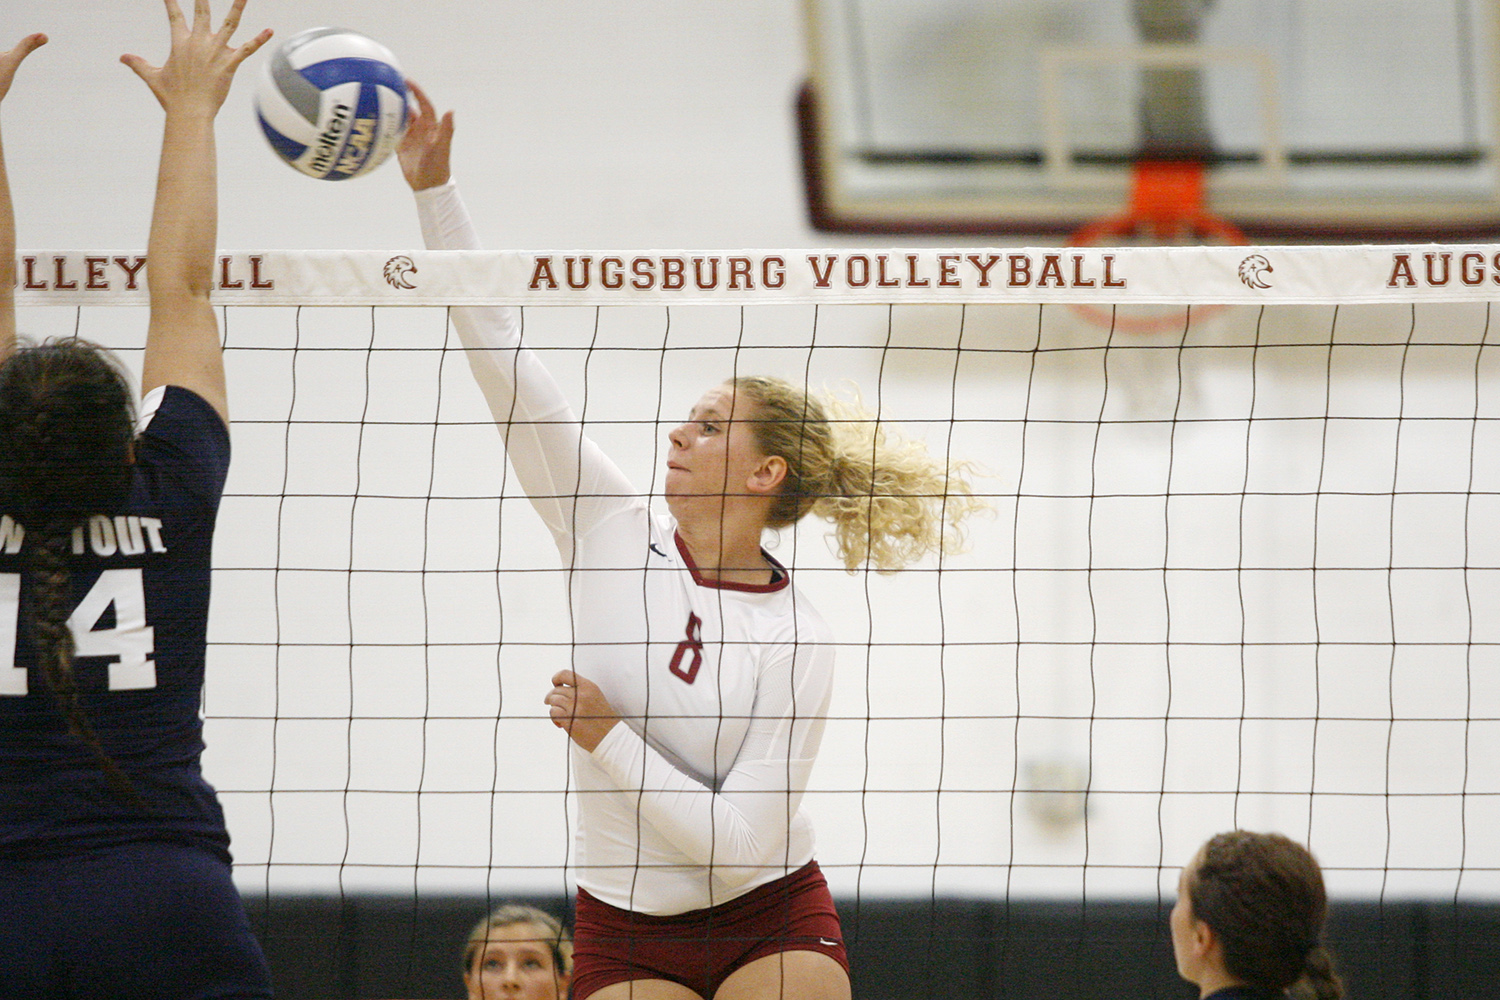 Augsburg volleyball player Jessica Lillquist (8) goes up for shot against UW-Stout's Ashley Pratt (14) n the first set of a match between UW-Stout on September 11, 2014. Augsburg won 3-2 (25-12, 15-25, 25-18, 18-25, 15-9).